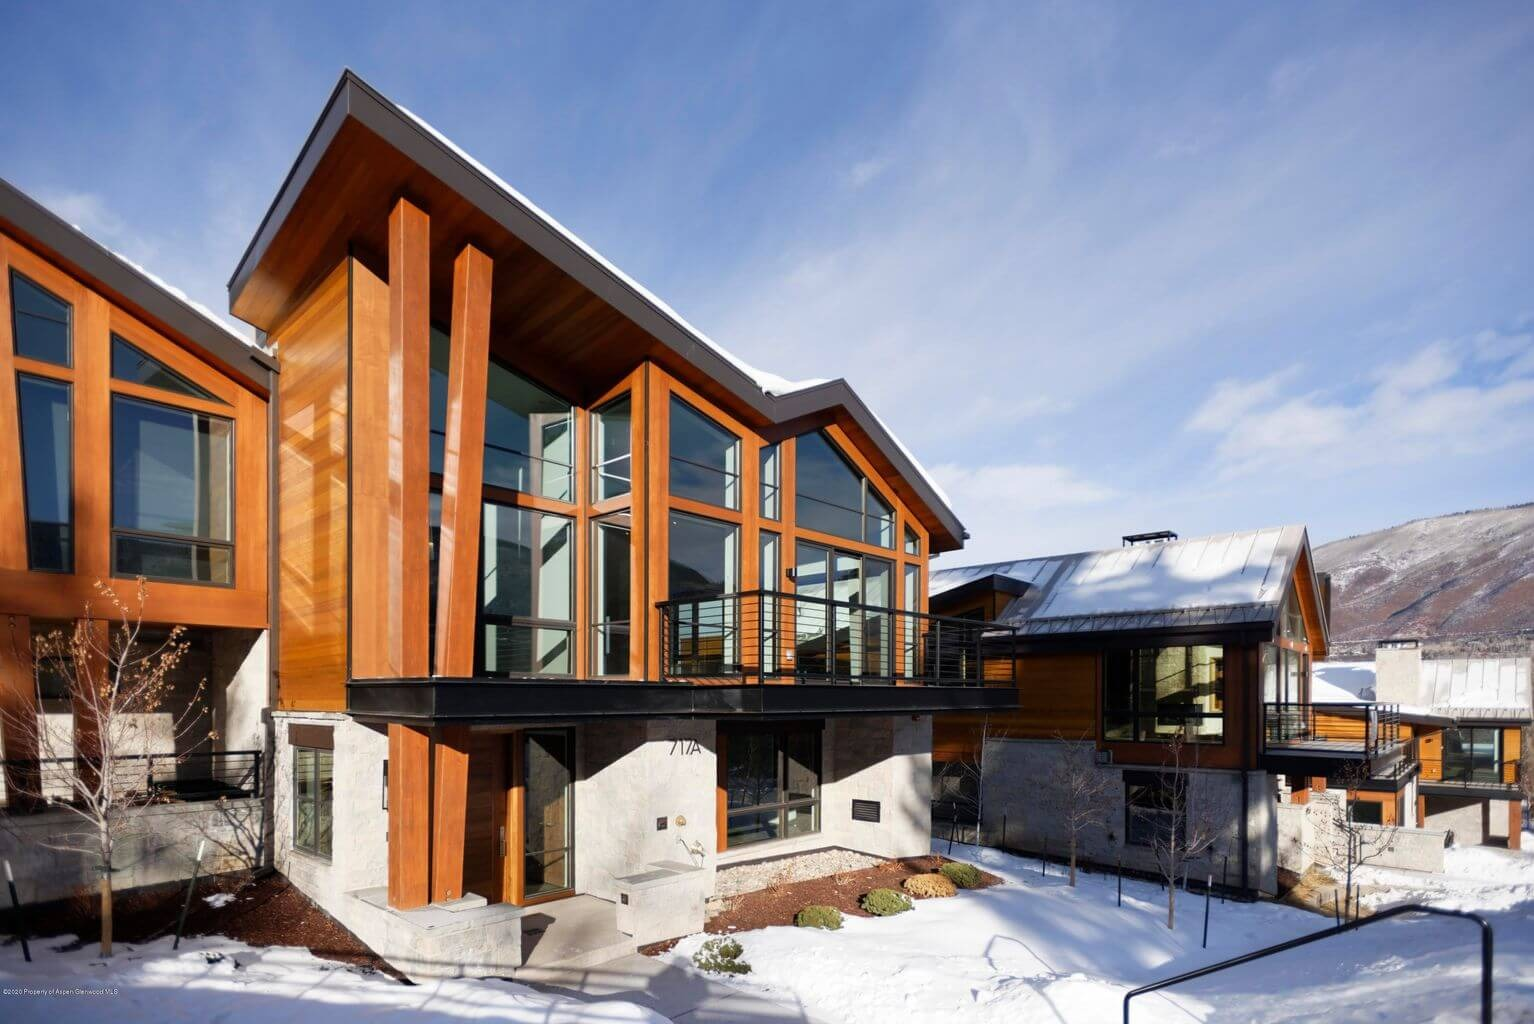 Last of the Developer One Aspen Townhomes at 717 S Aspen St #A Sells for $12M/$2,781 SF Unfurn Image